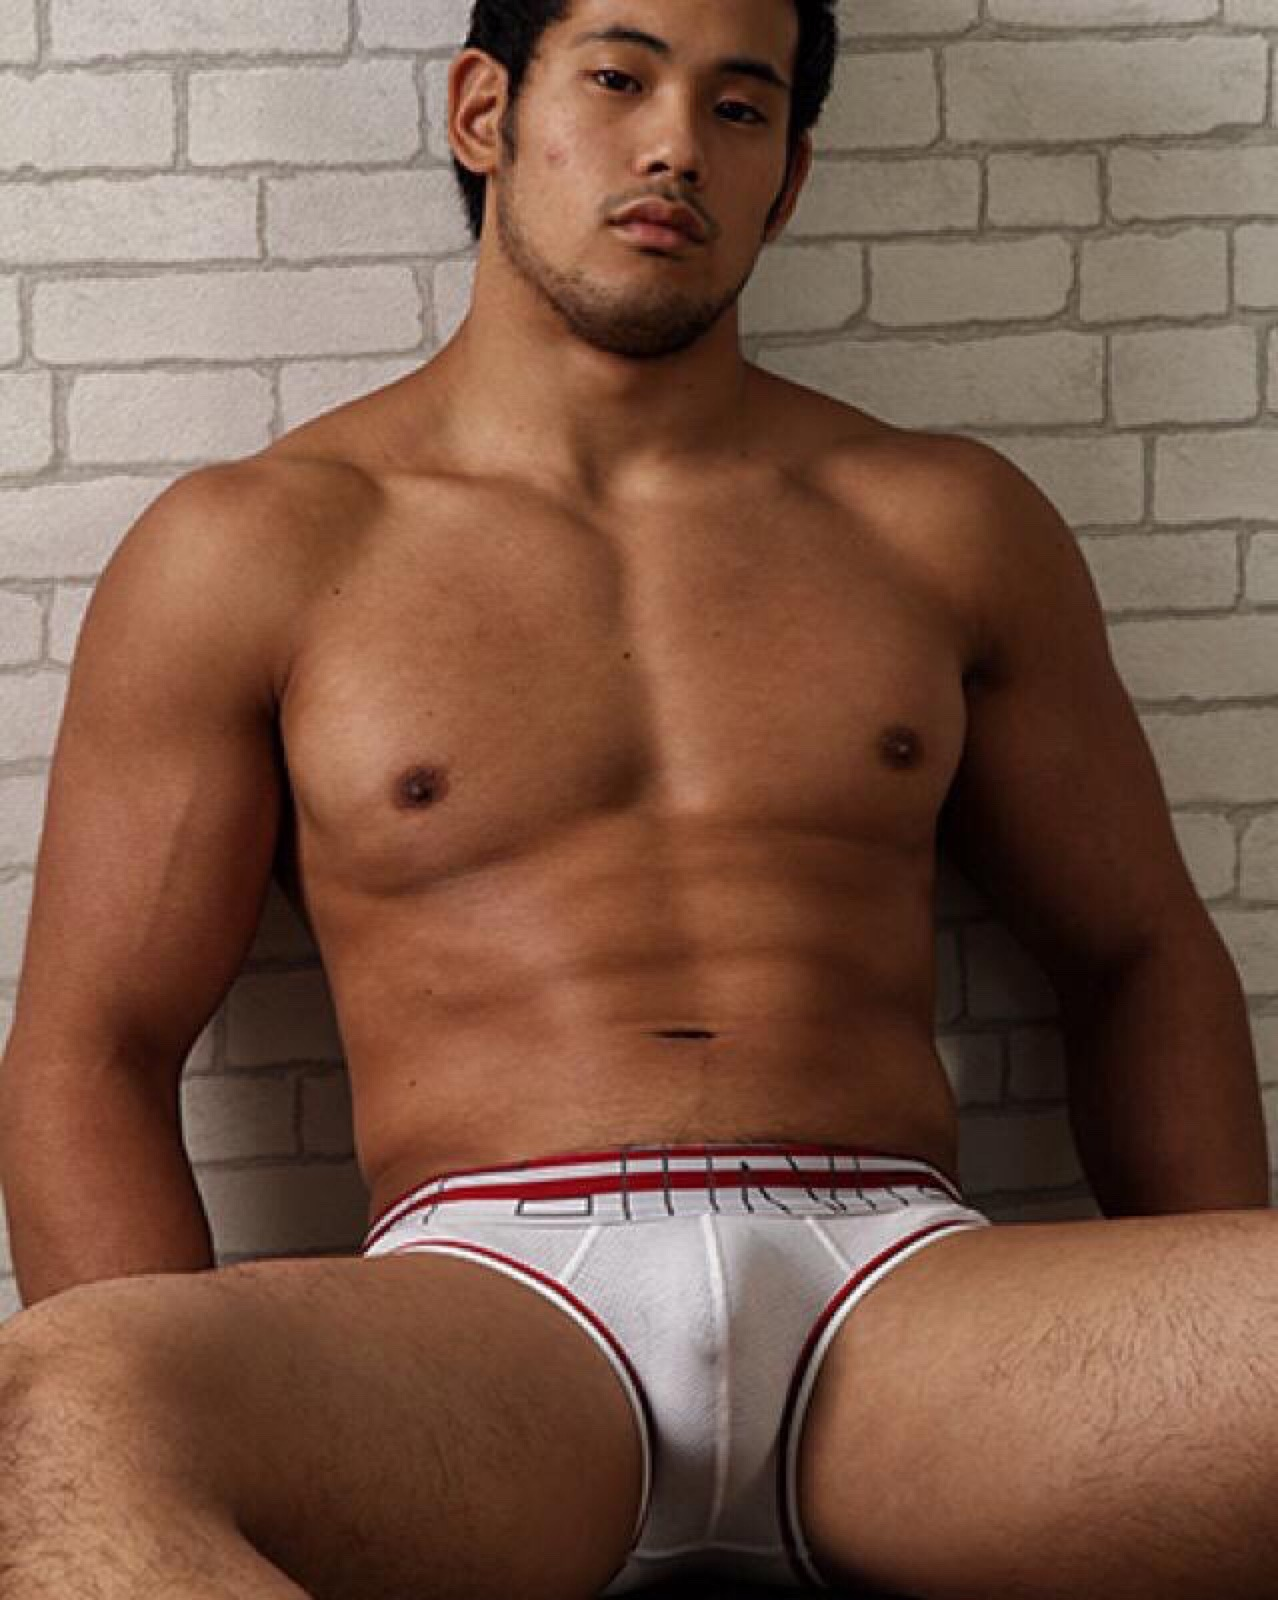 Naked Male Actors naked asian male actors - datawav